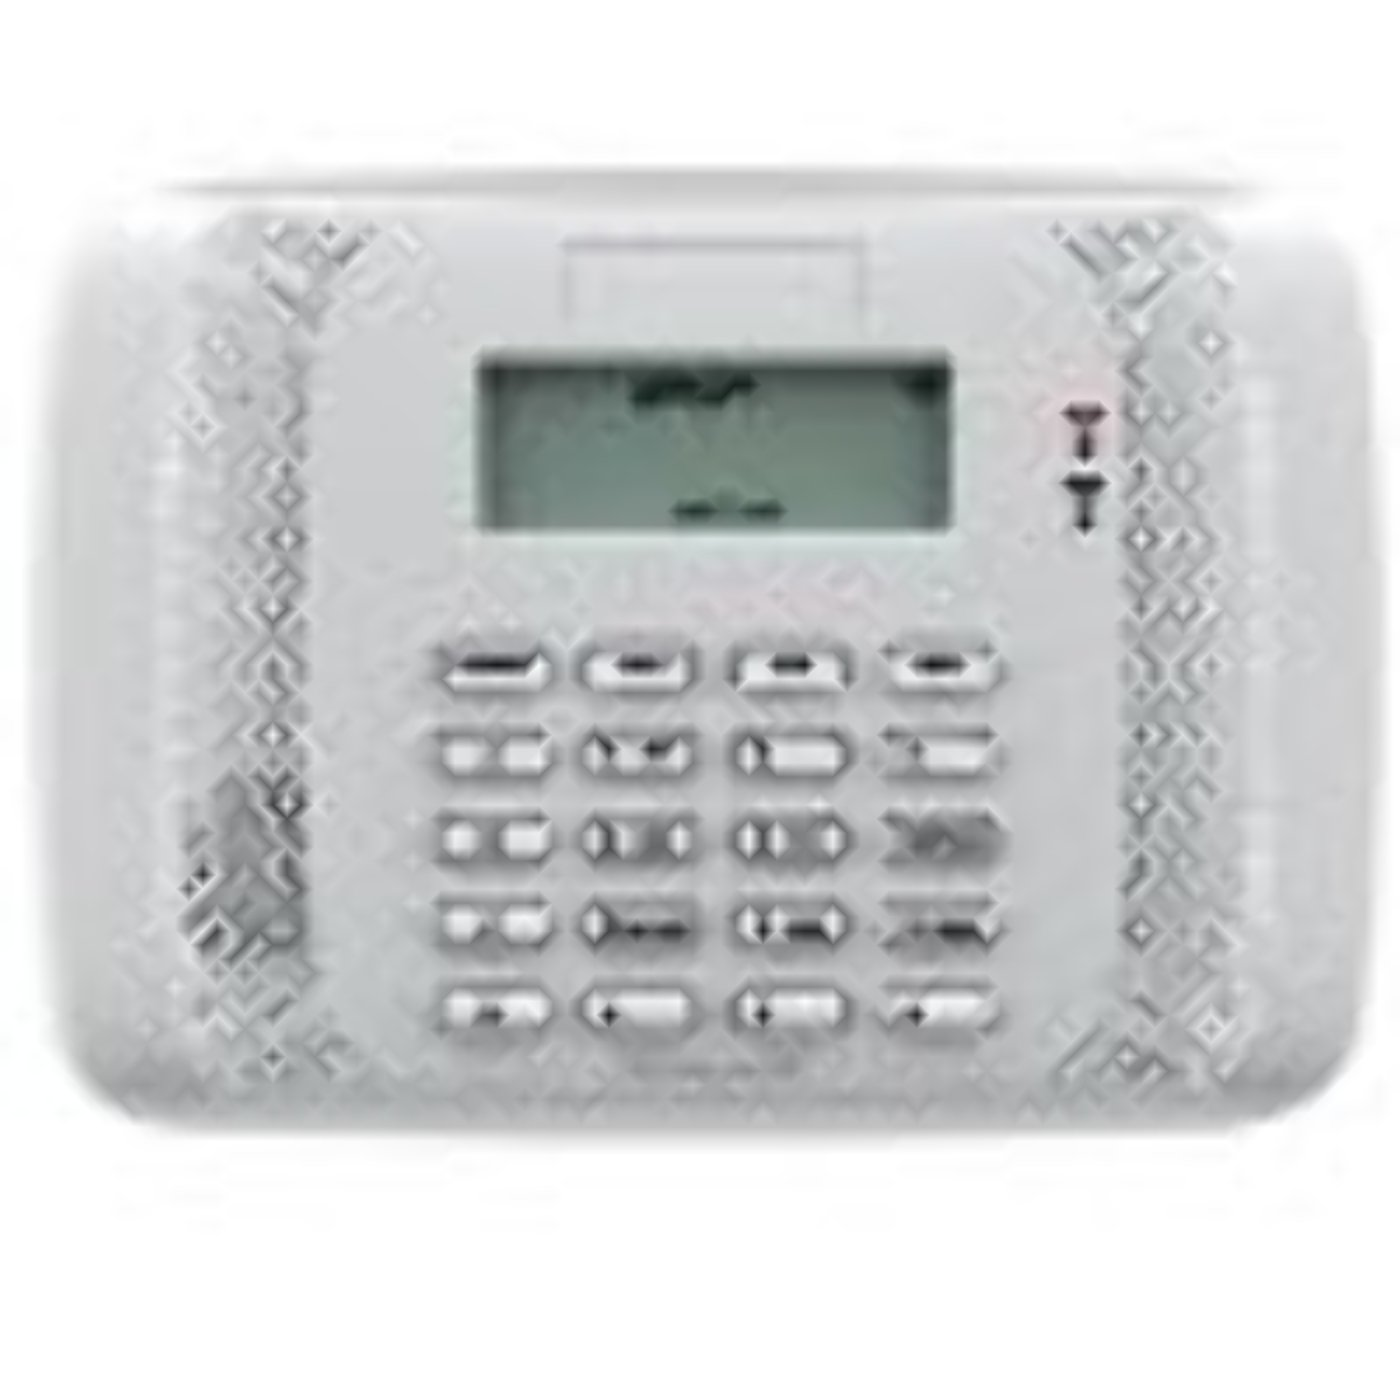 Amazon.com: Honeywell 6152 Fixed English Security Keypad REPLACEMENT FOR  6150: Home Improvement